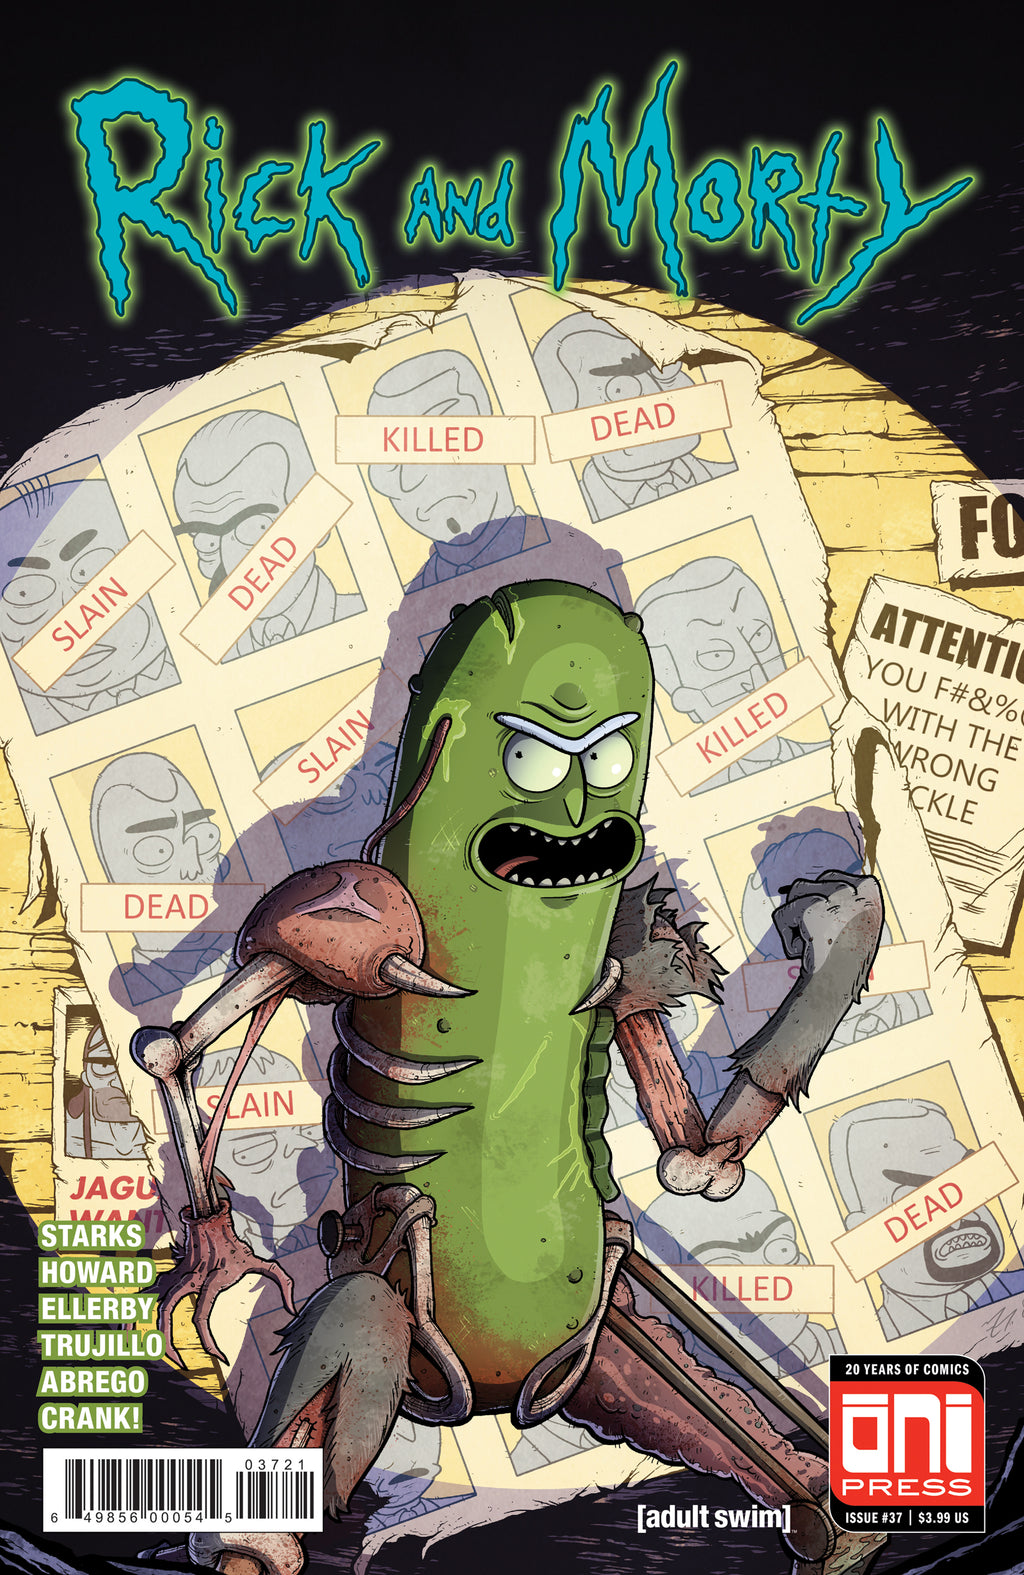 Rick and Morty #37 - Cover B